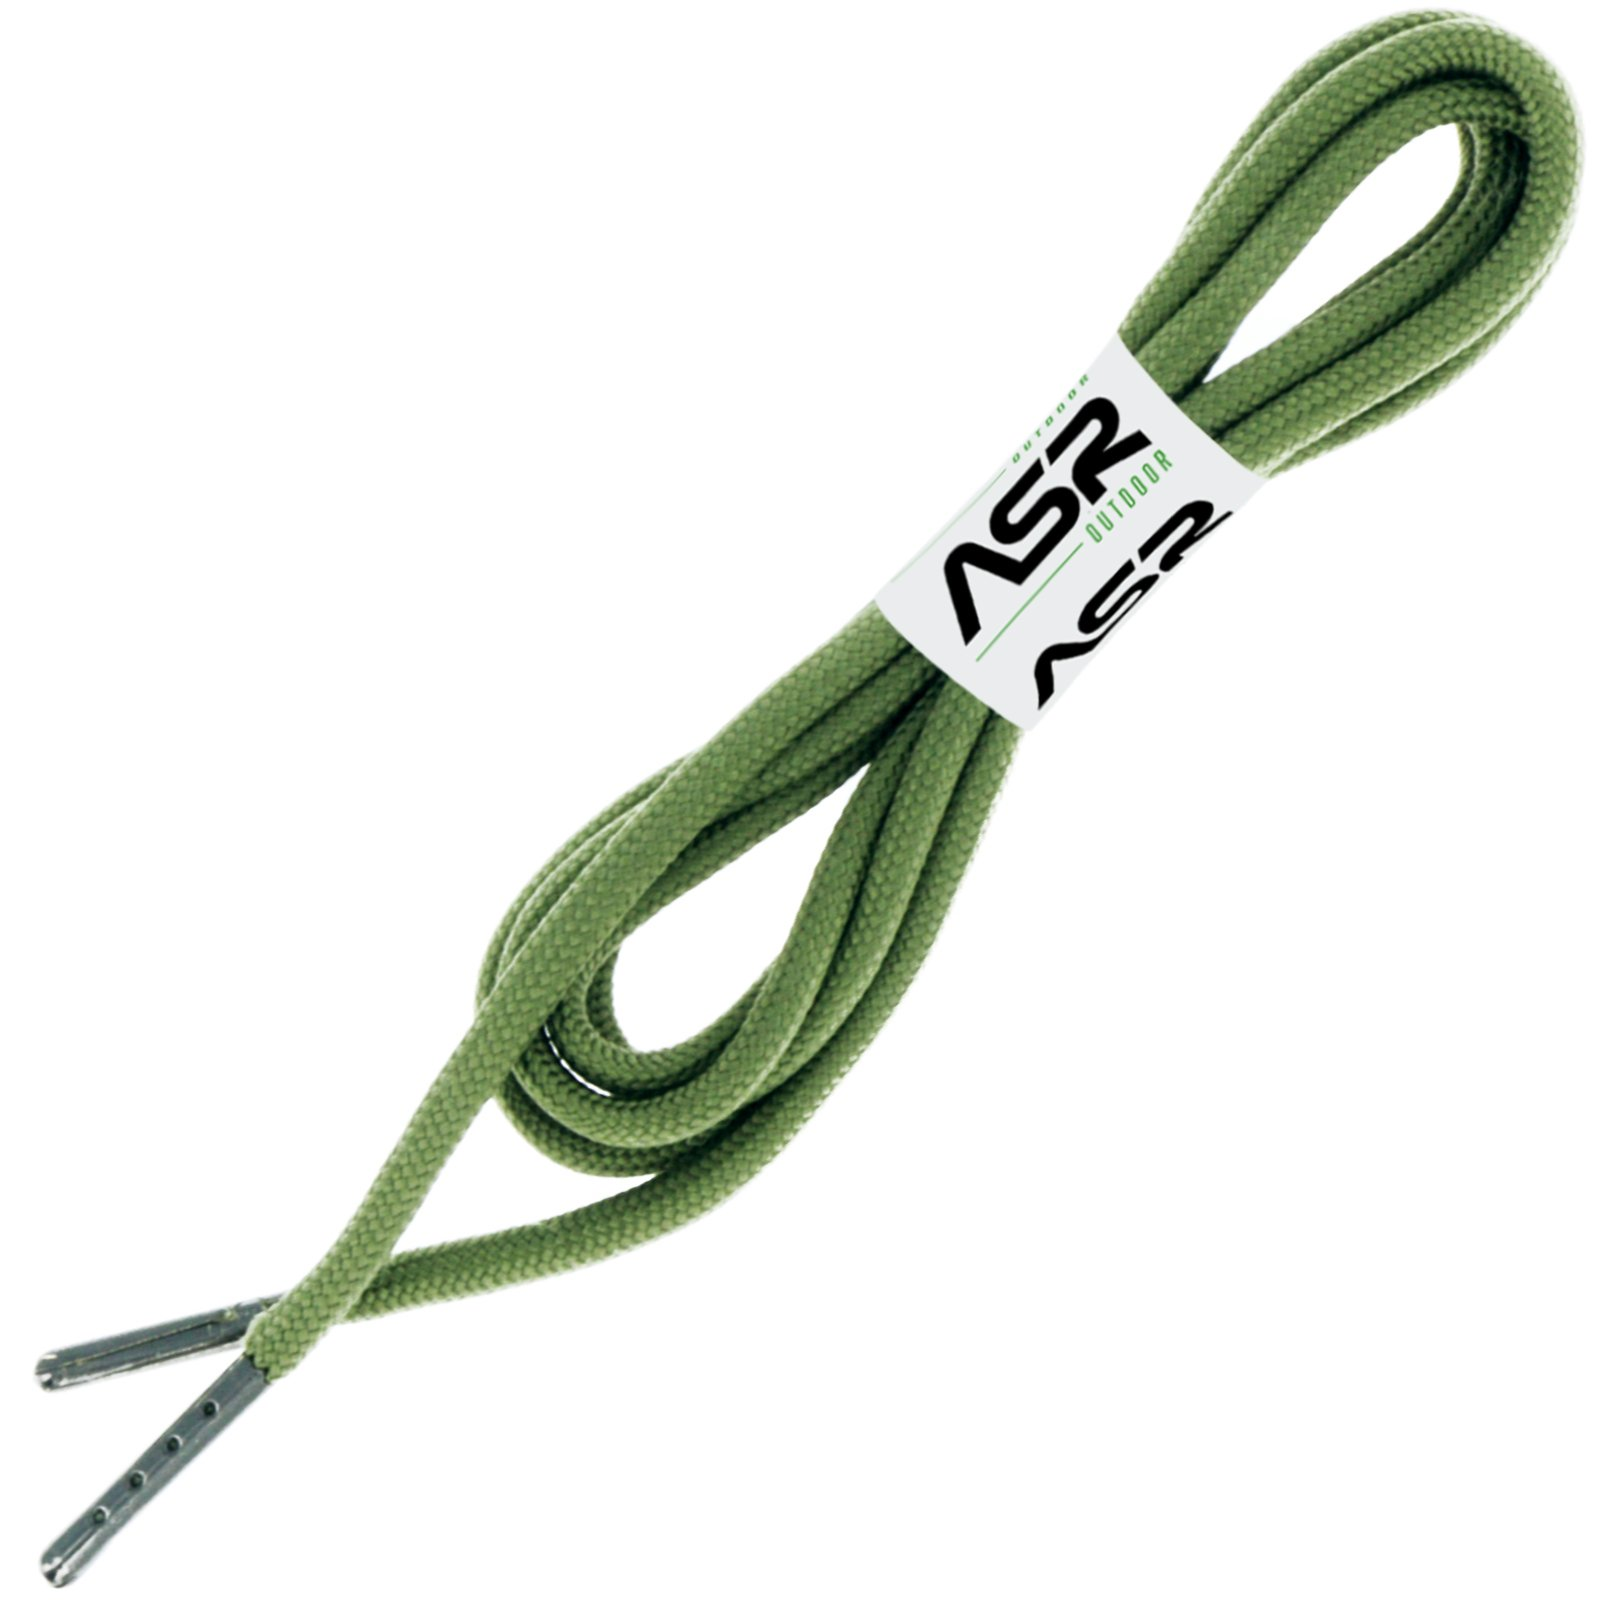 ASR Outdoor TraversaLace 550 Paracord Survival Laces for Shoes and Hiking Boots Green — 6ft, 1 Pair